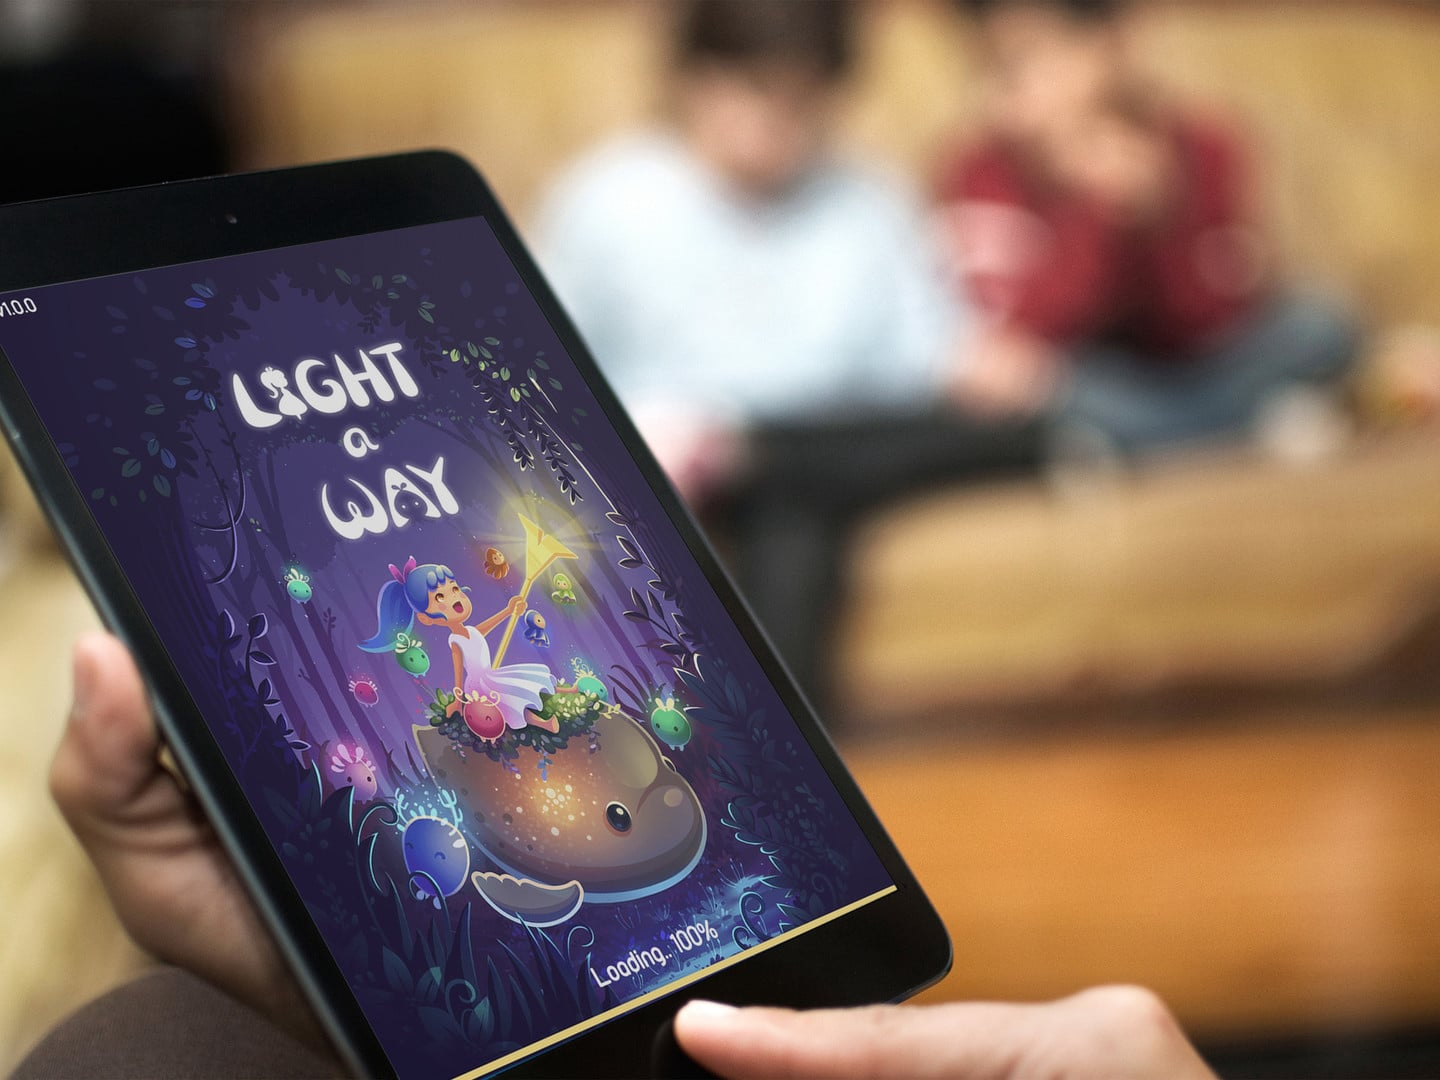 Eliminate the Darkness in the Newest RPG Game, Light a Way